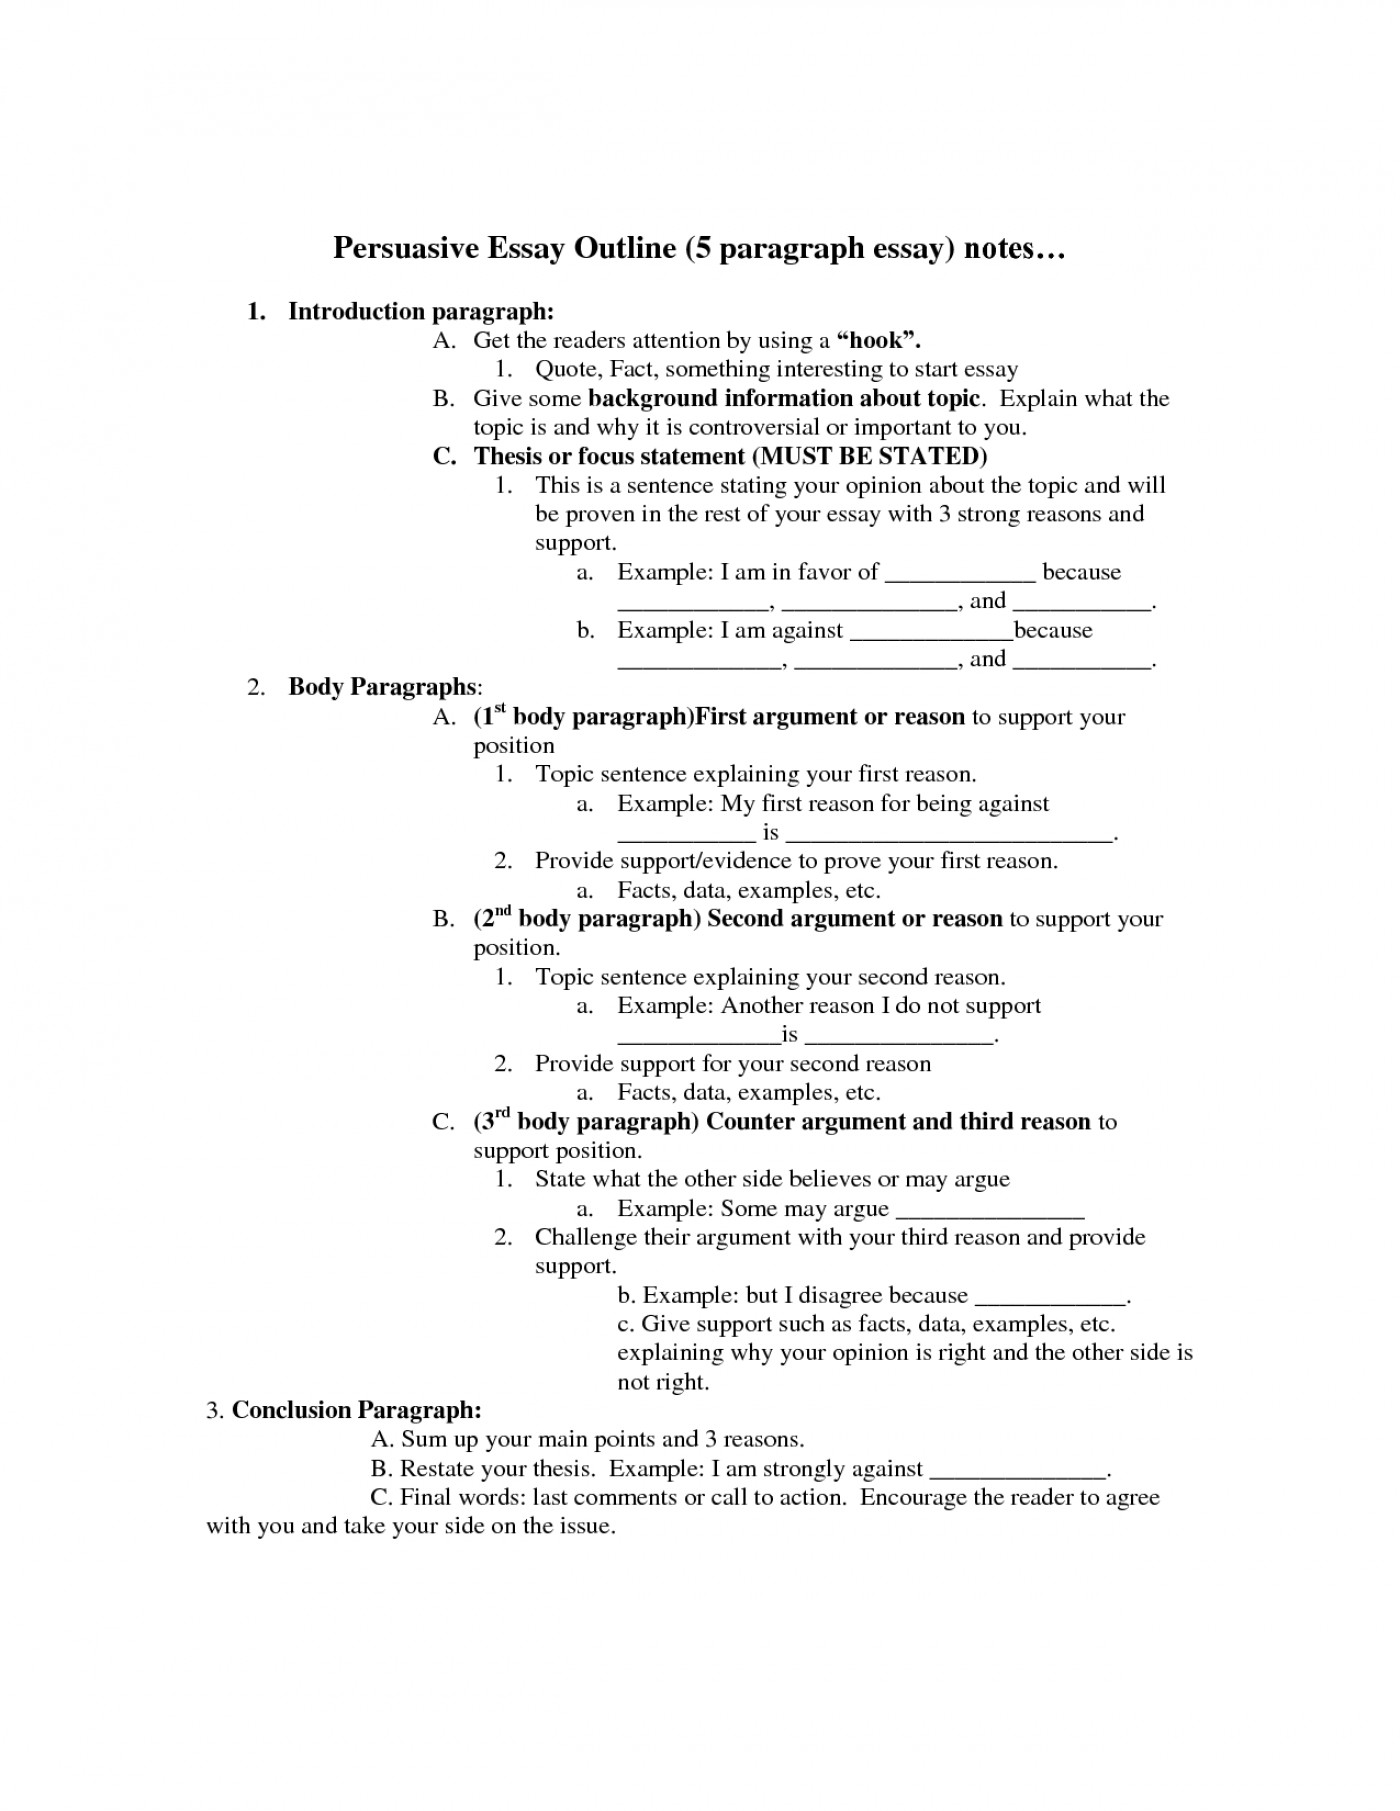 006 Persuasive Essay Outline Unbelievable Good Topics 5th Grade Format Middle School Example 1400